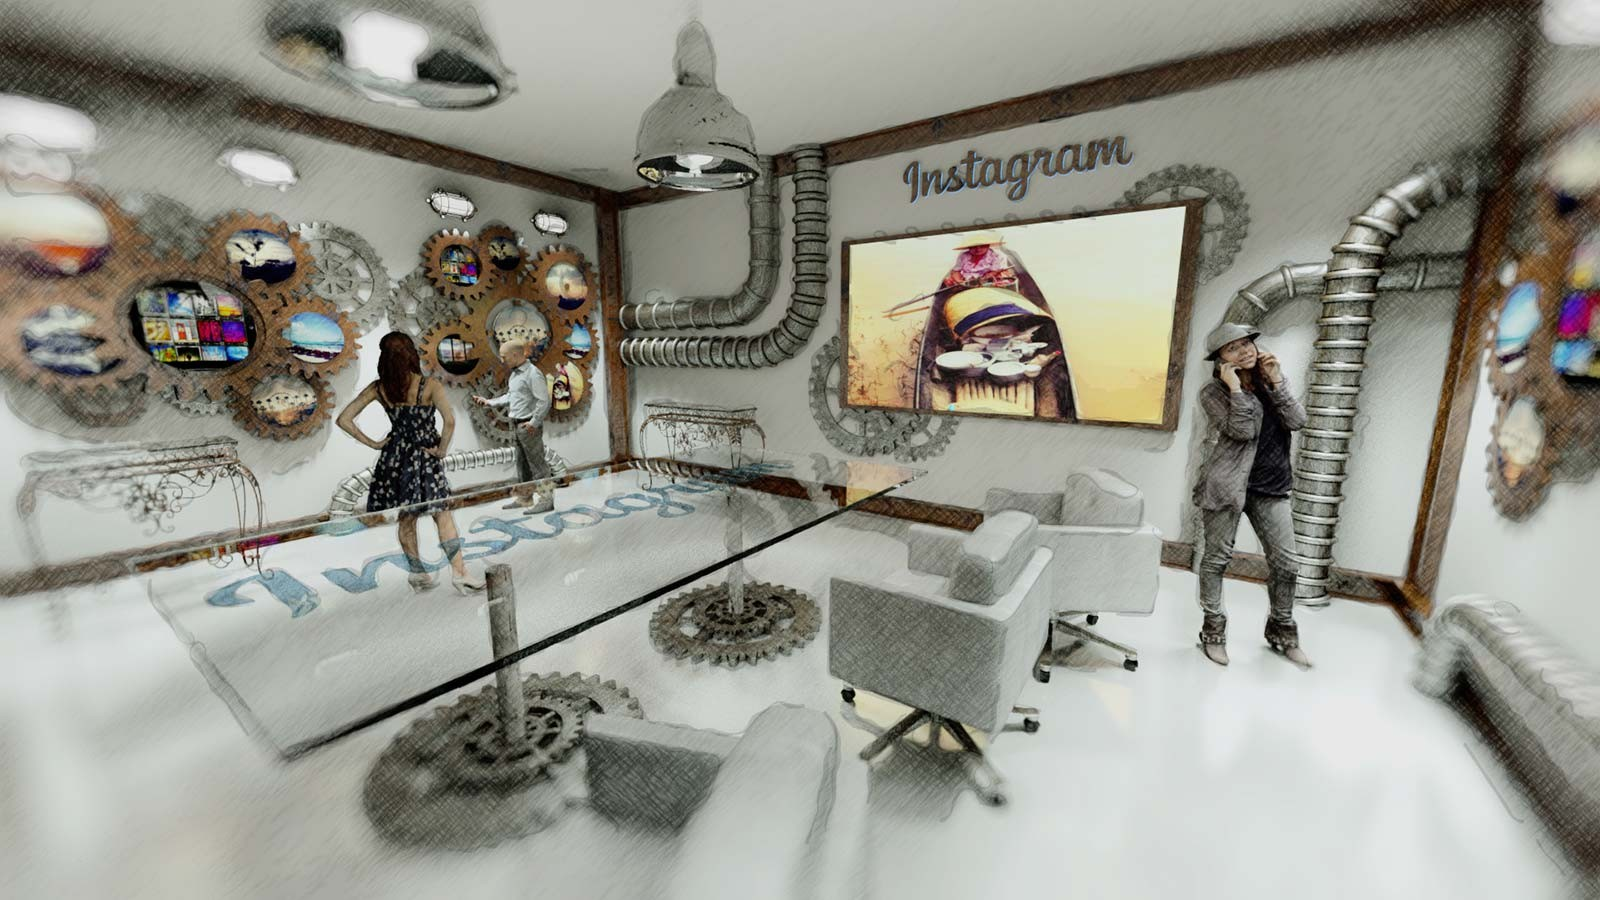 Showroom Instagram - Architekturvisualisierung Innen